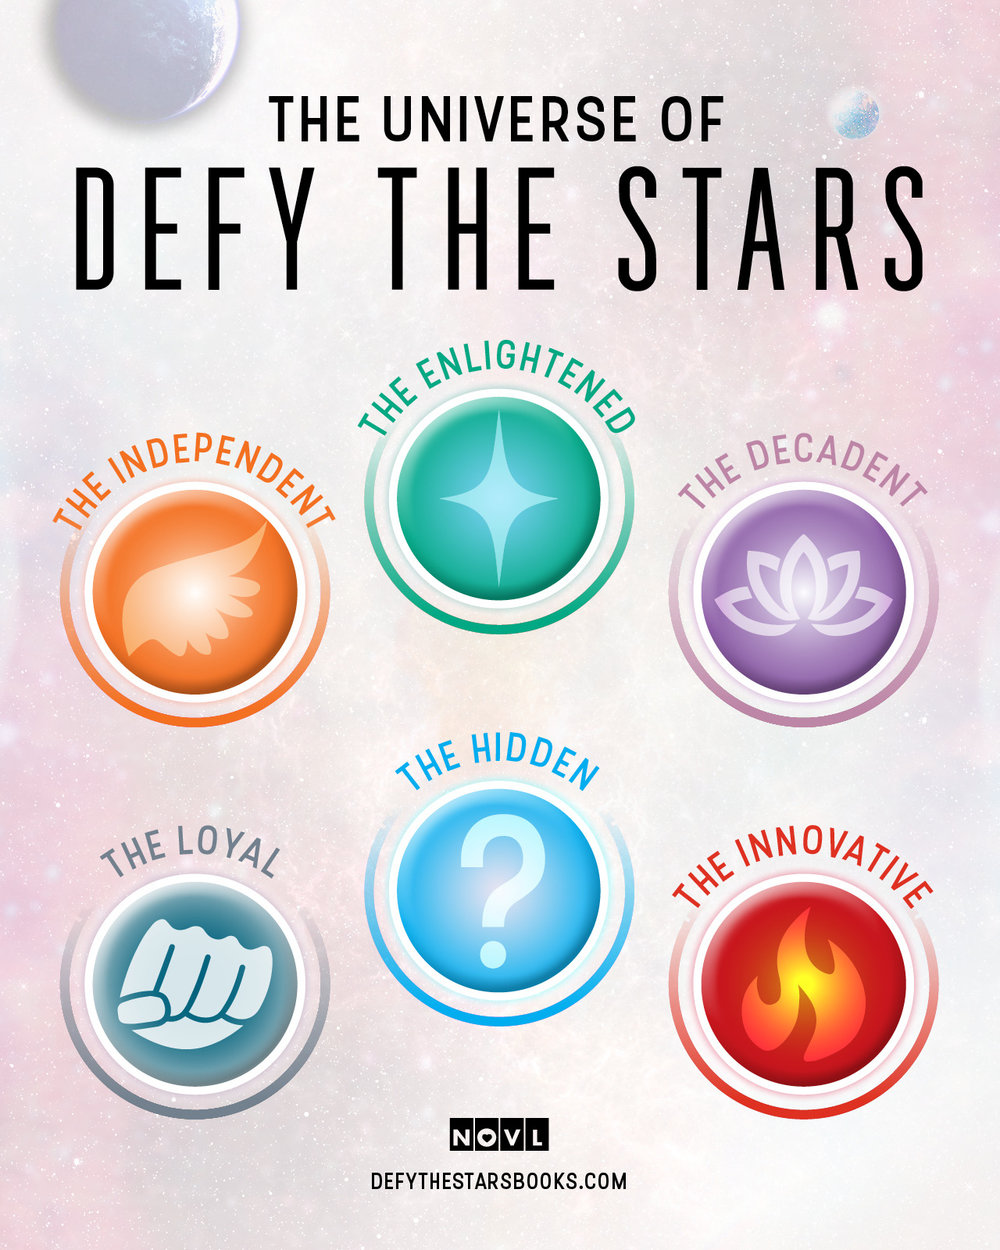 Defy the Stars infographic.jpg